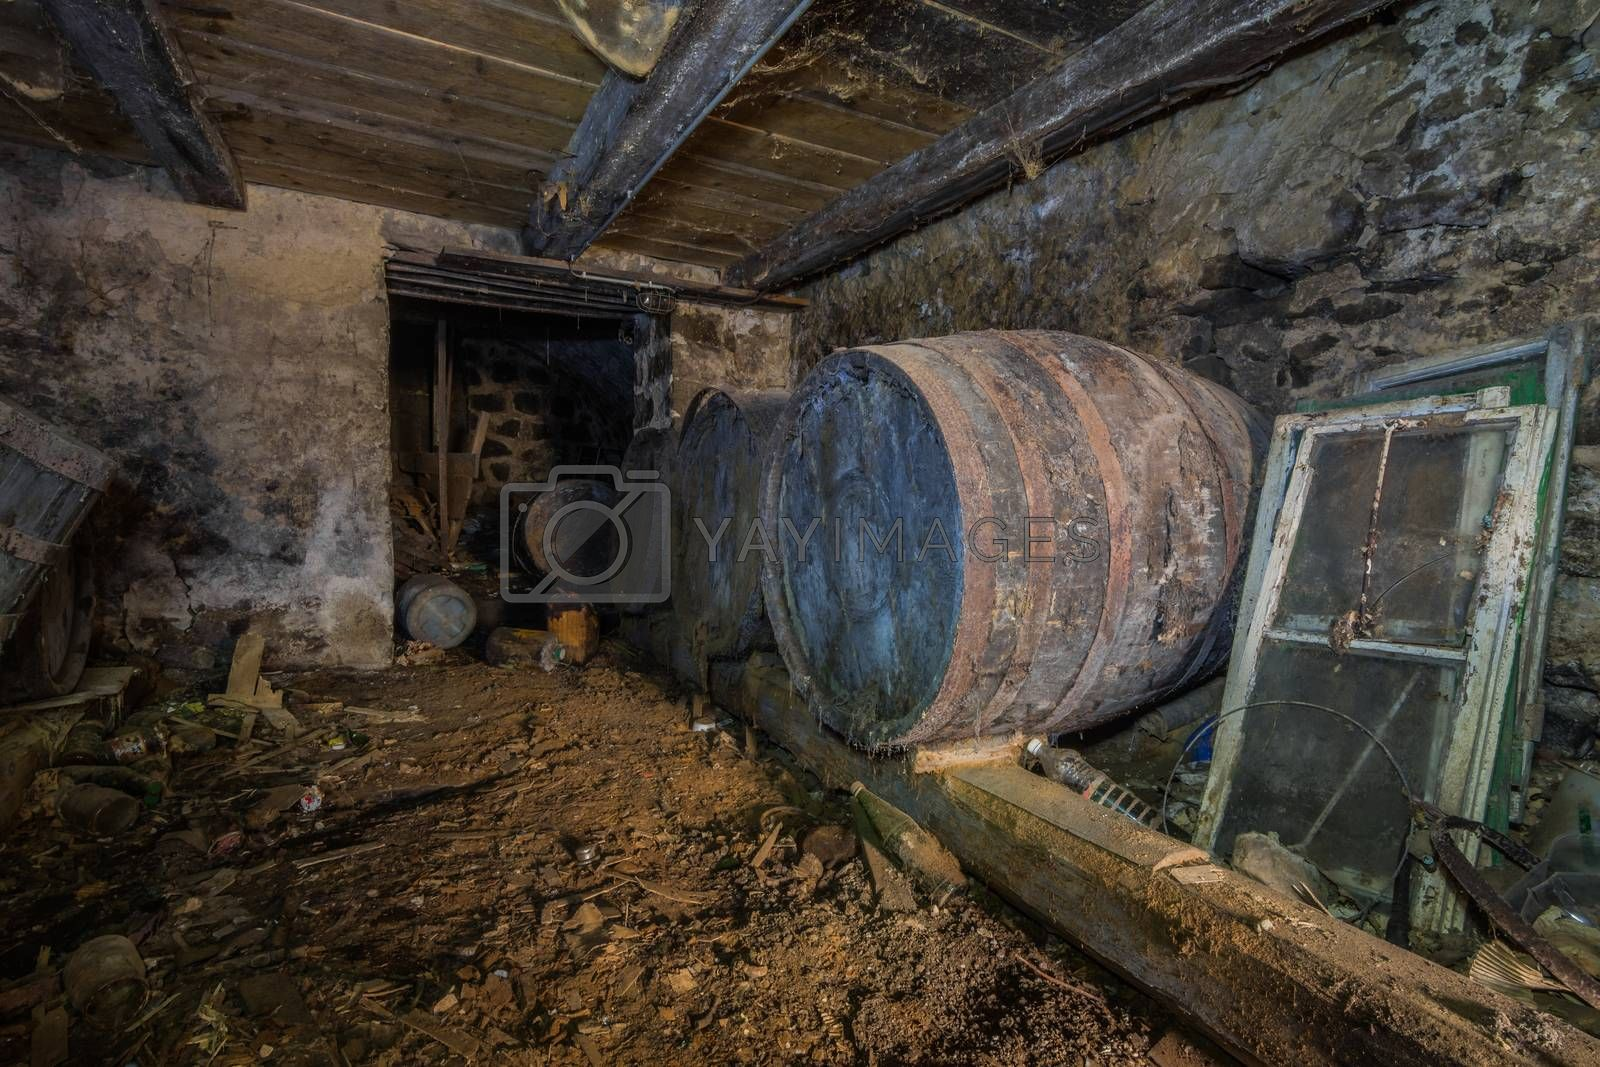 stored barrels in a cellar of a house